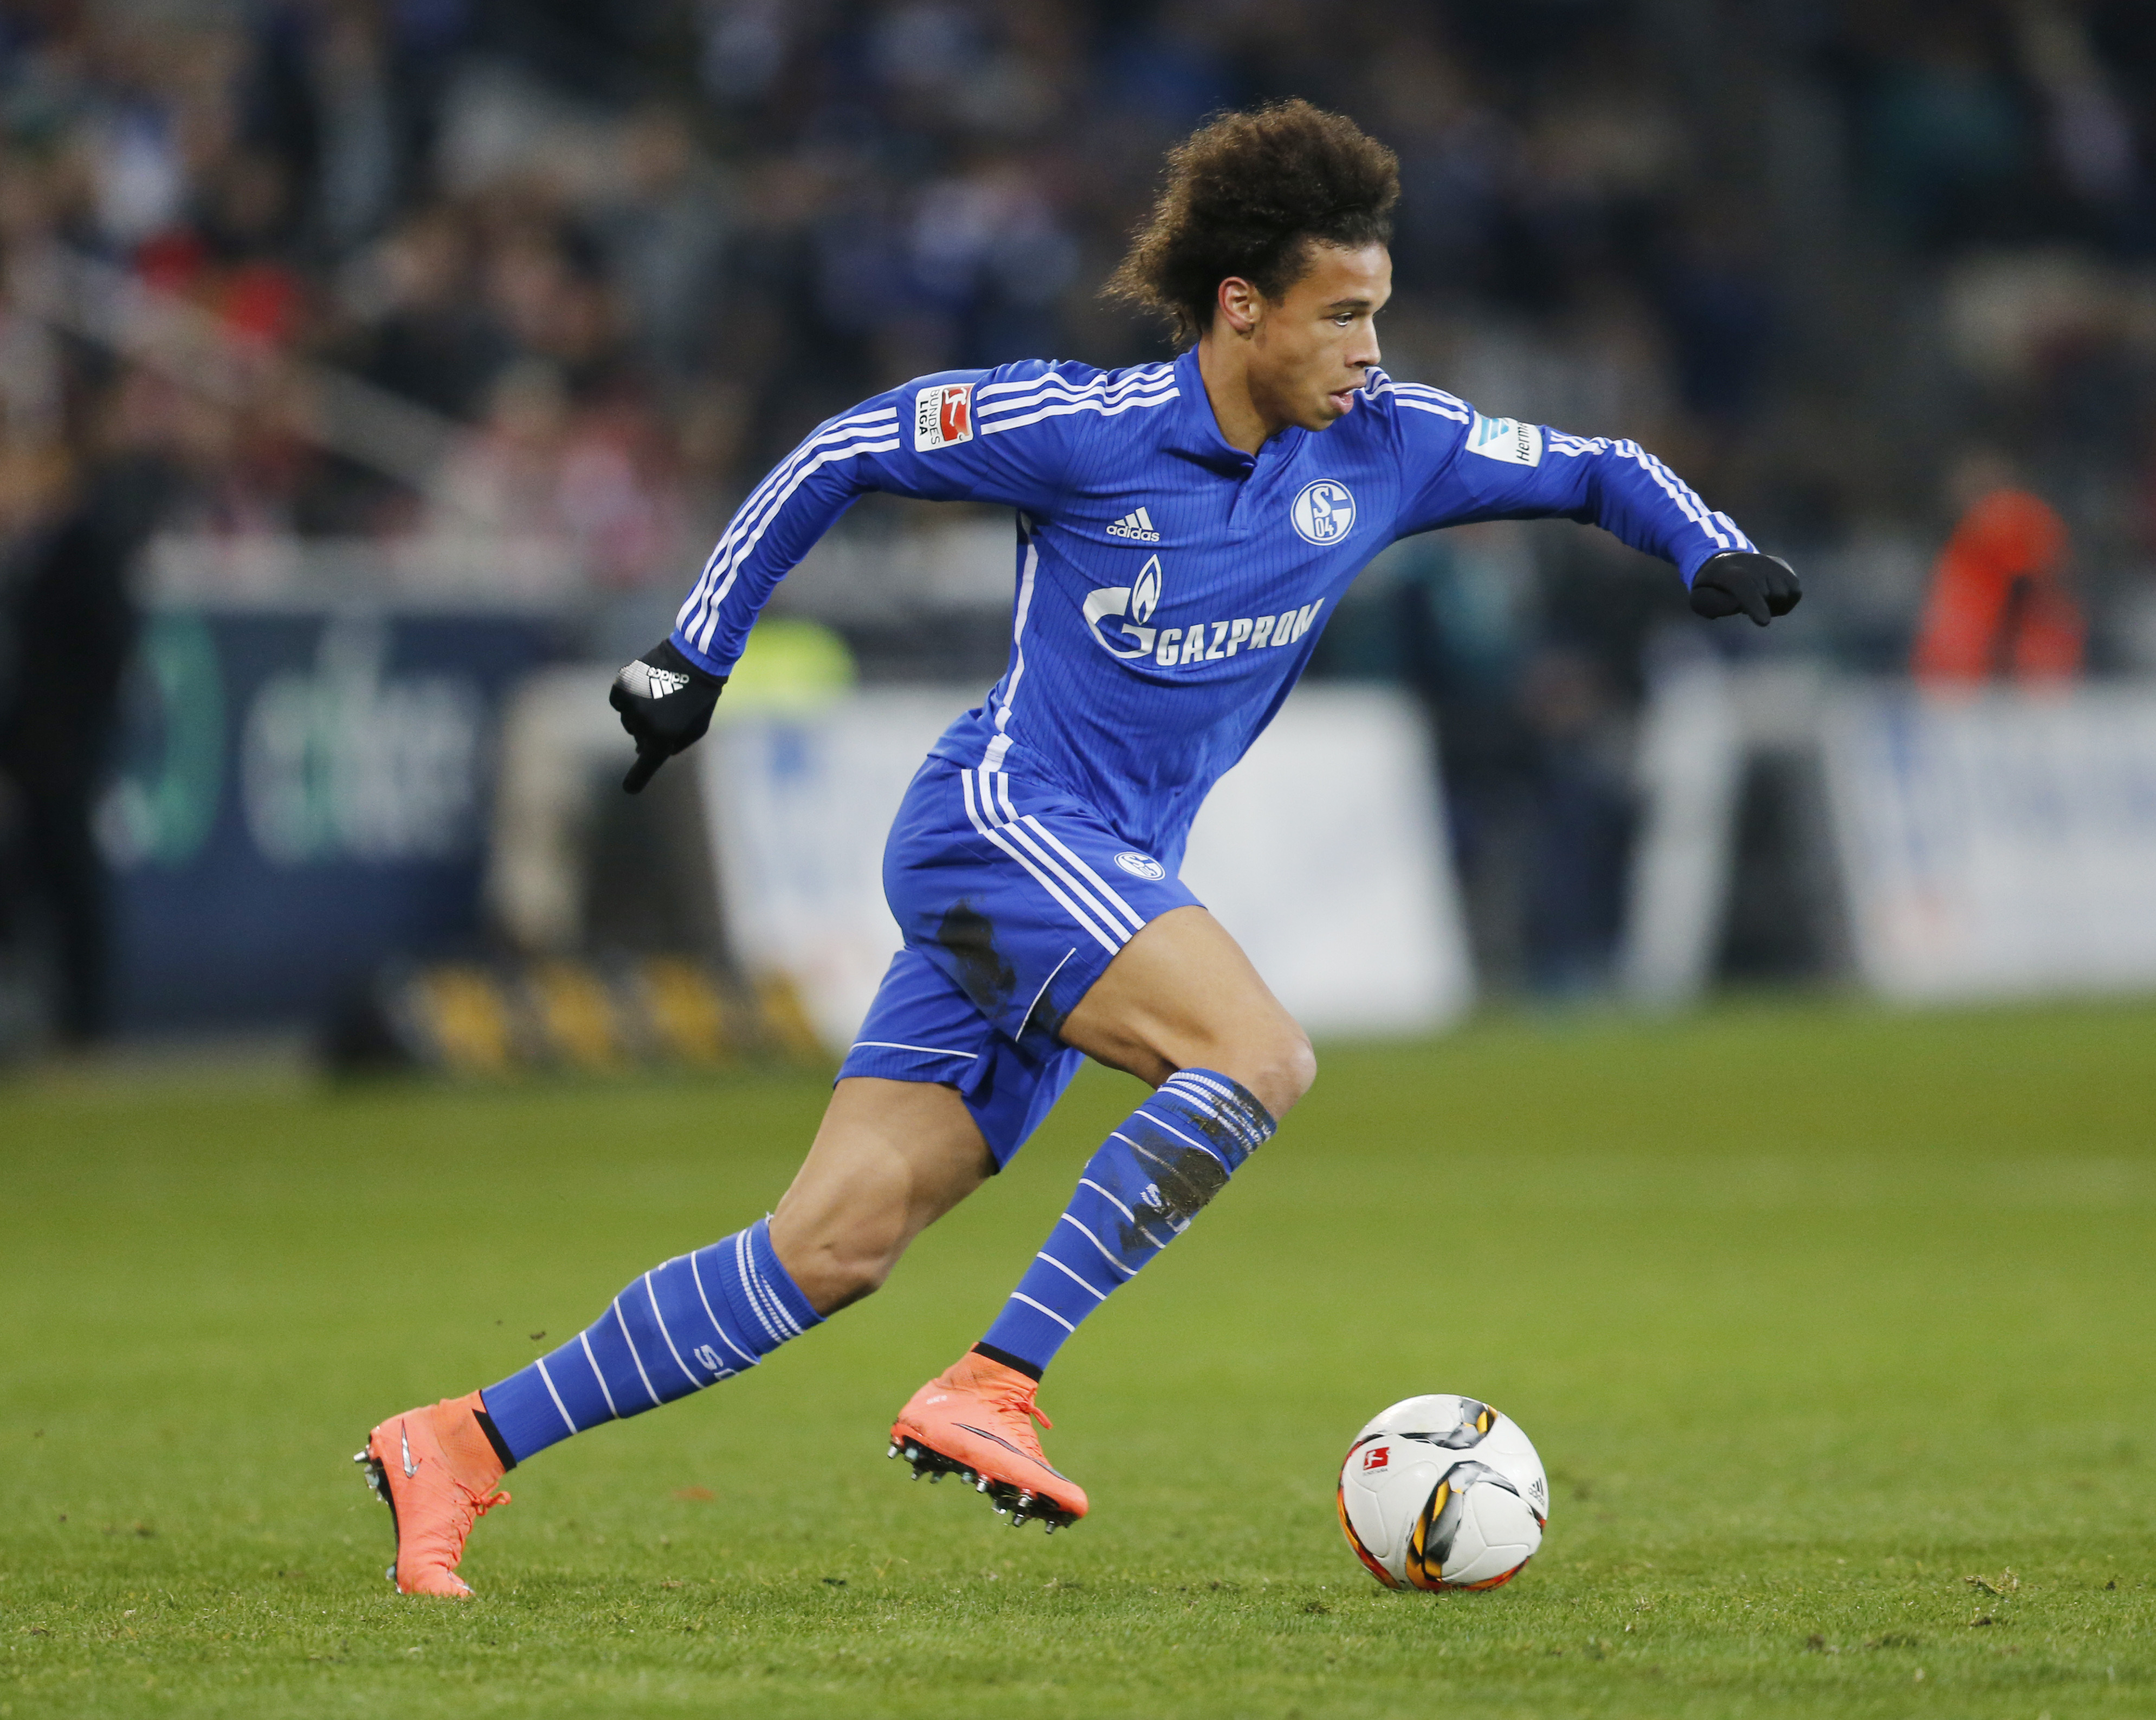 BREAKING Leroy Sane Agrees Personal Terms With Premier League